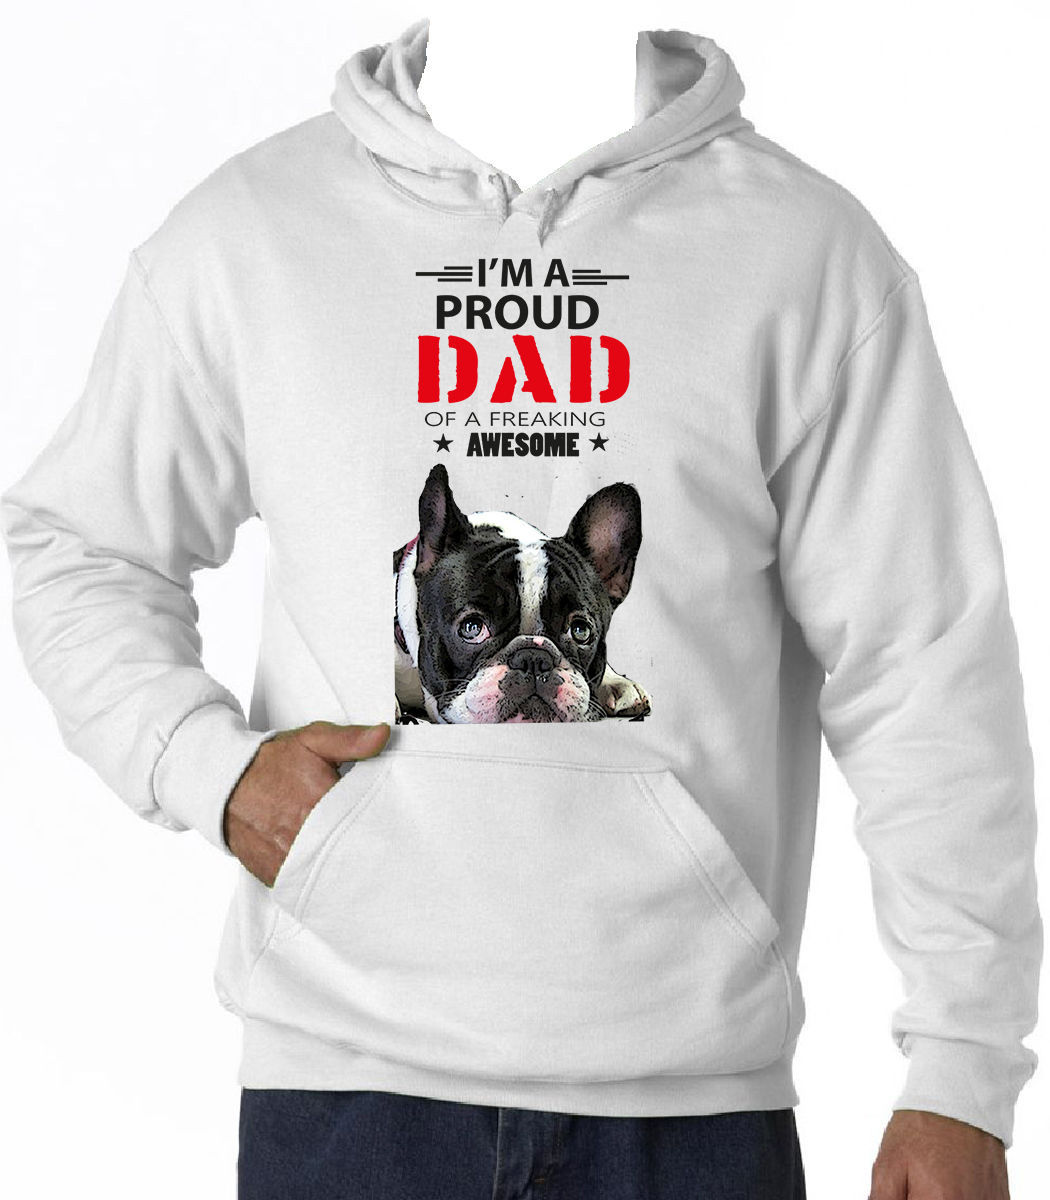 FRENCH BULLDOG 2 - IM A PROUD DAD - NEW COTTON WHITE HOODIE